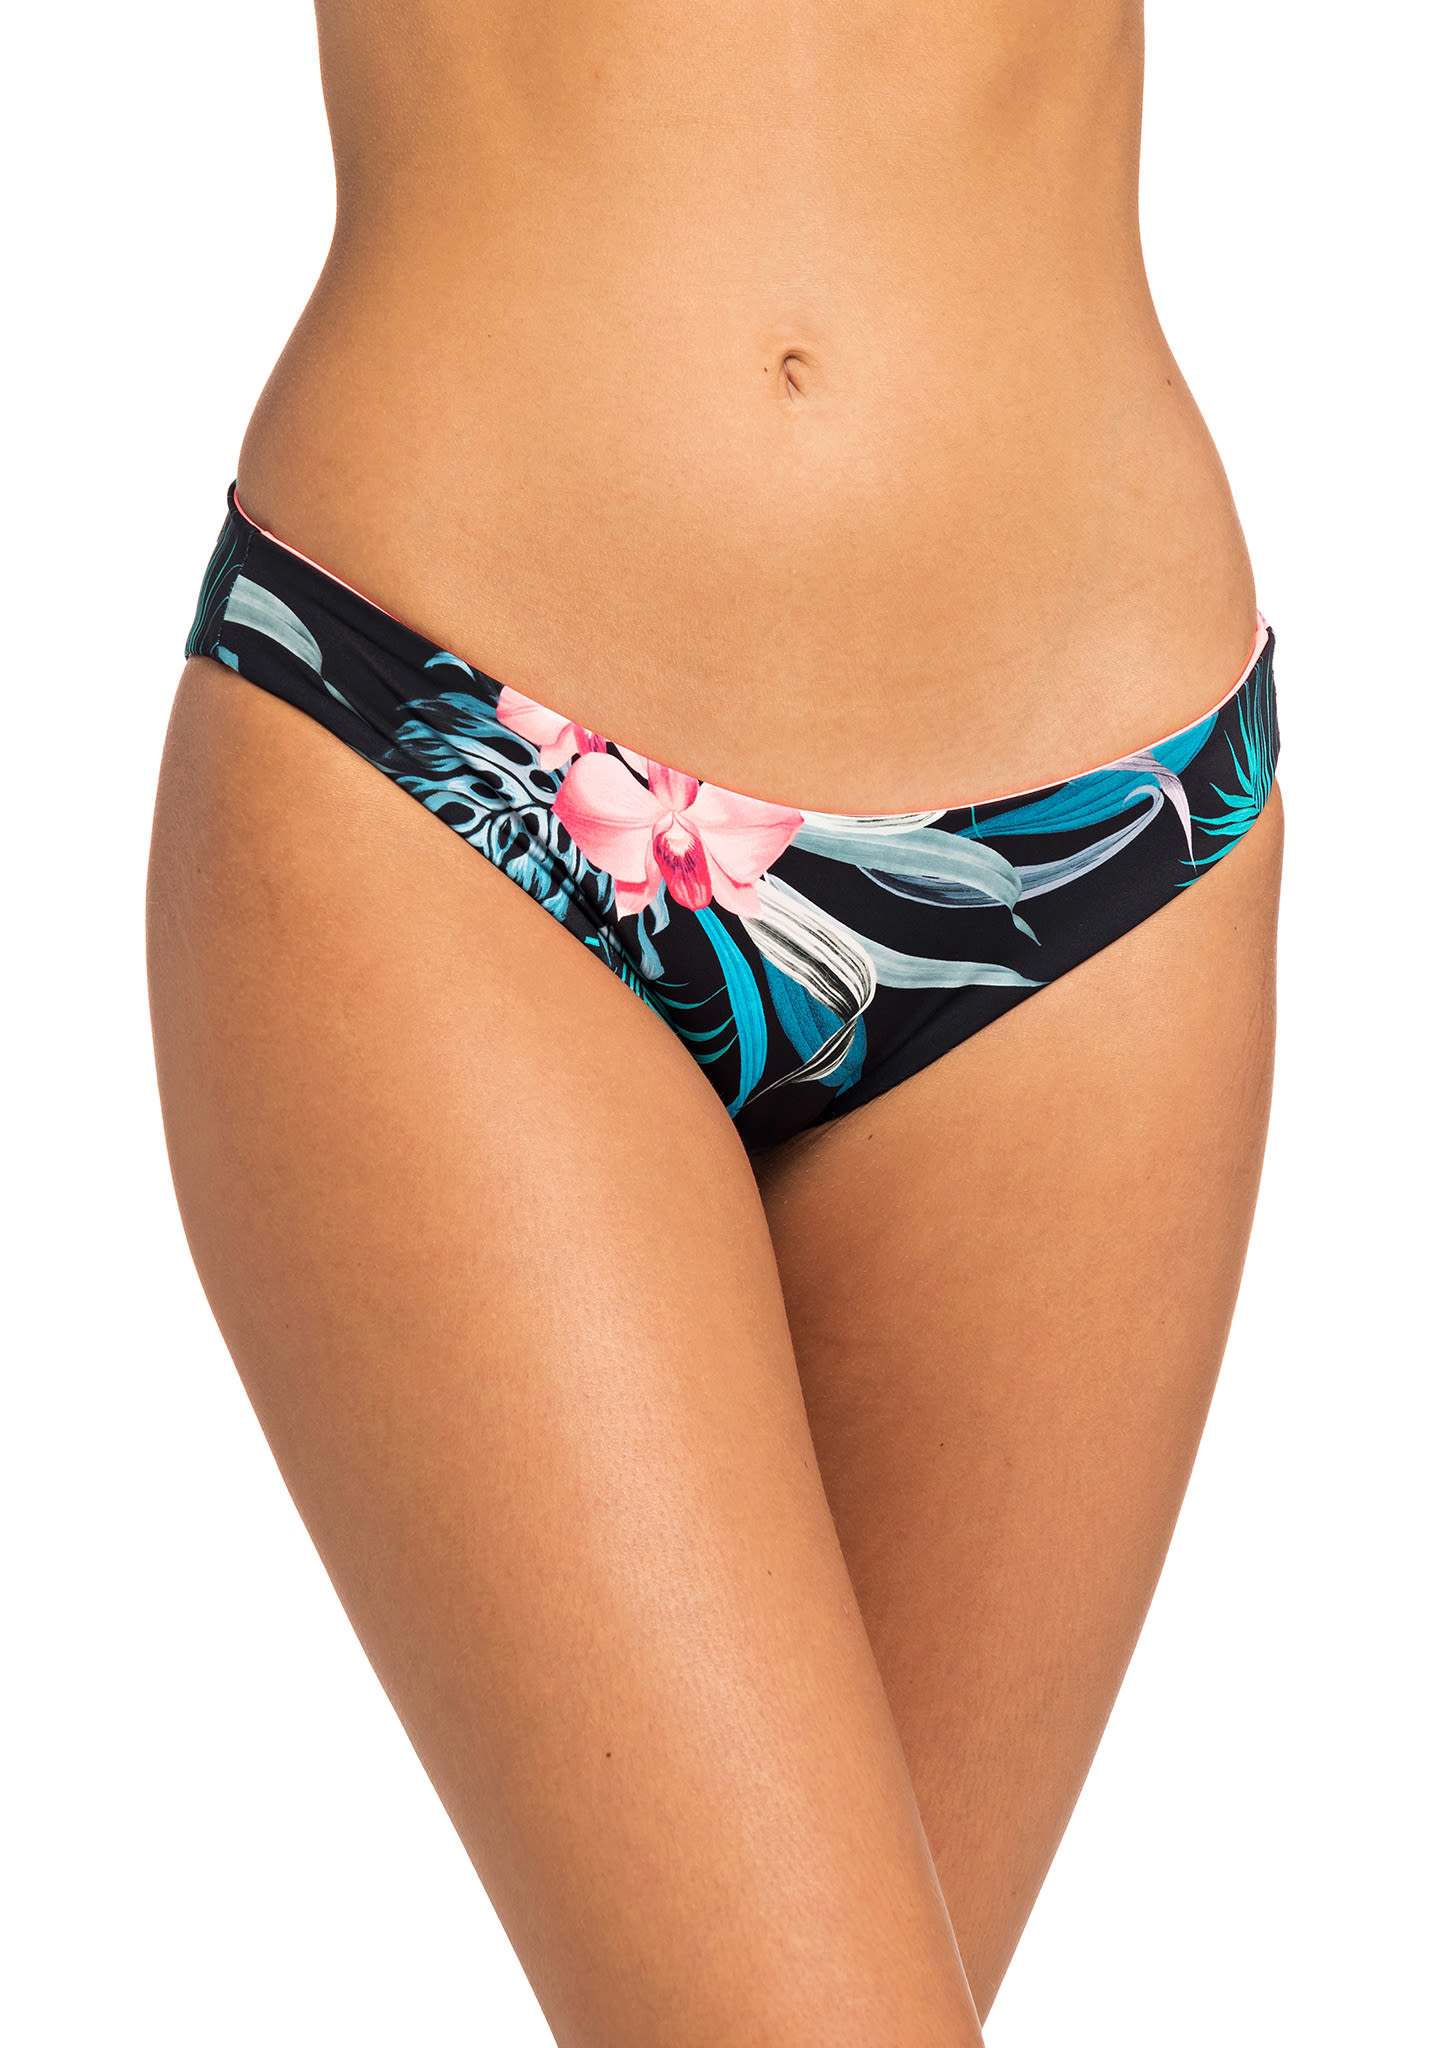 4bdd114d55748 Rip Curl Mirage Cloudbreak Essentials G - Bikini Bottom for Women - Black -  Planet Sports